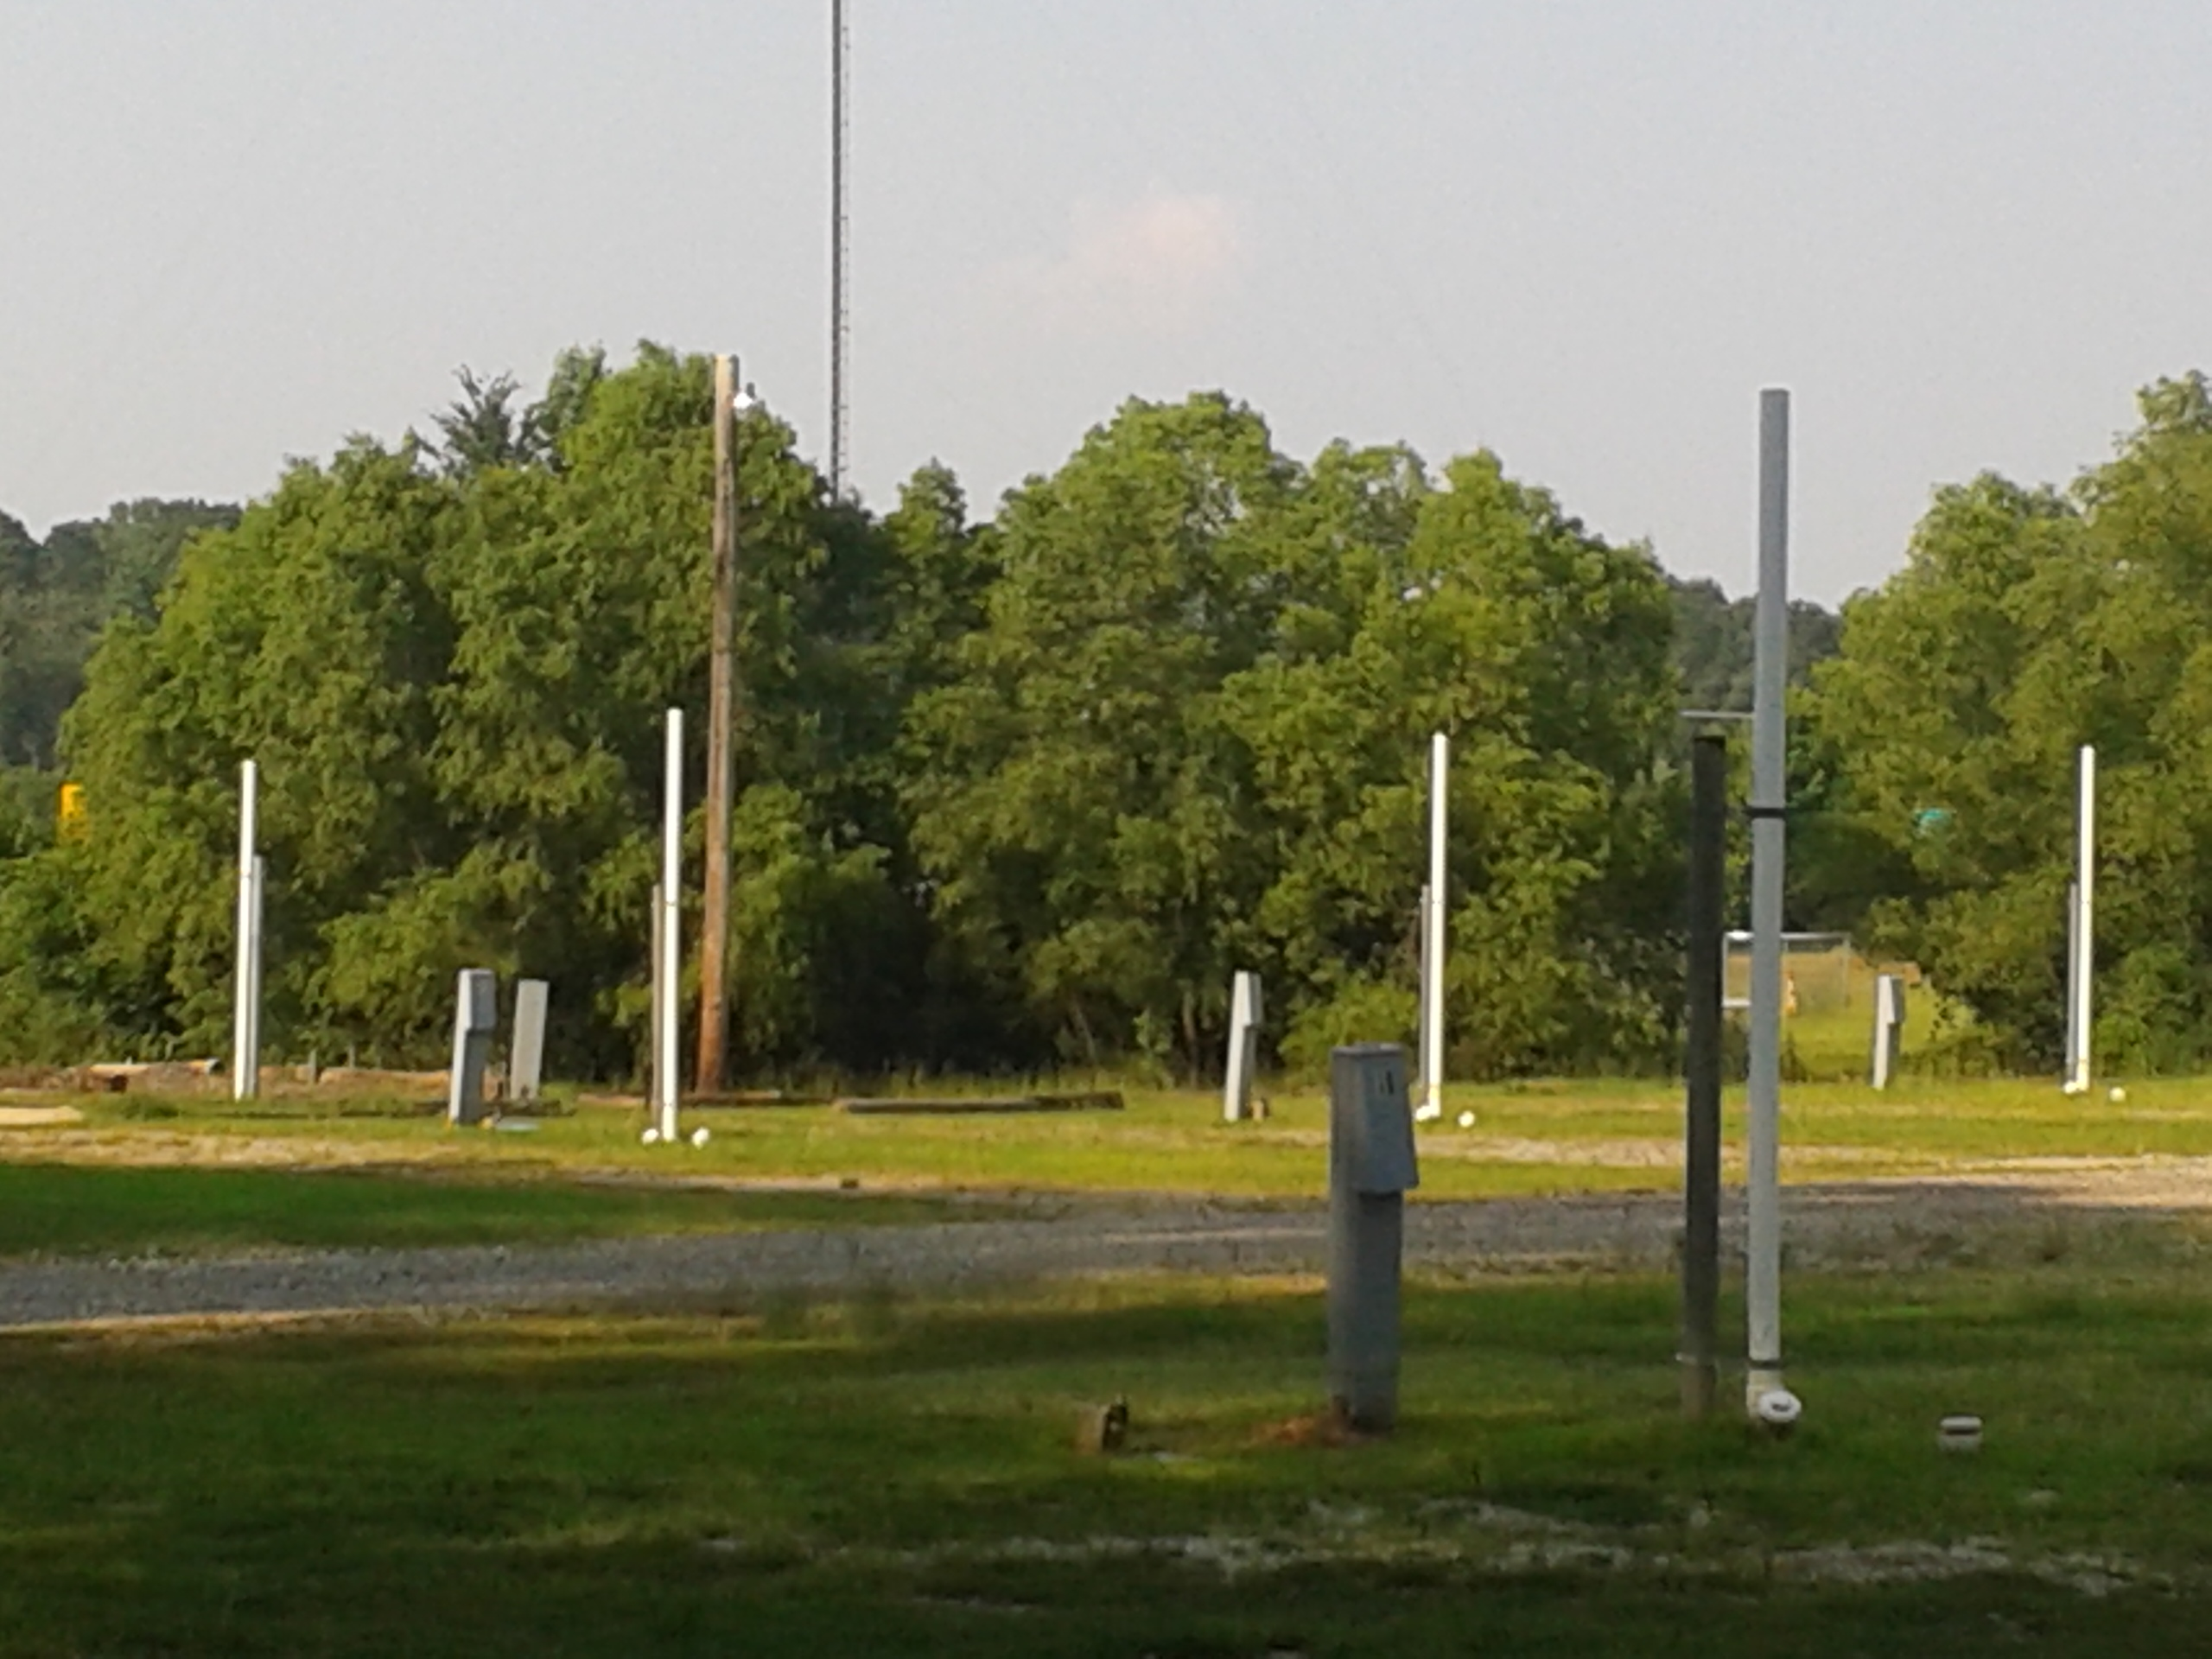 101 RV Park and Campground